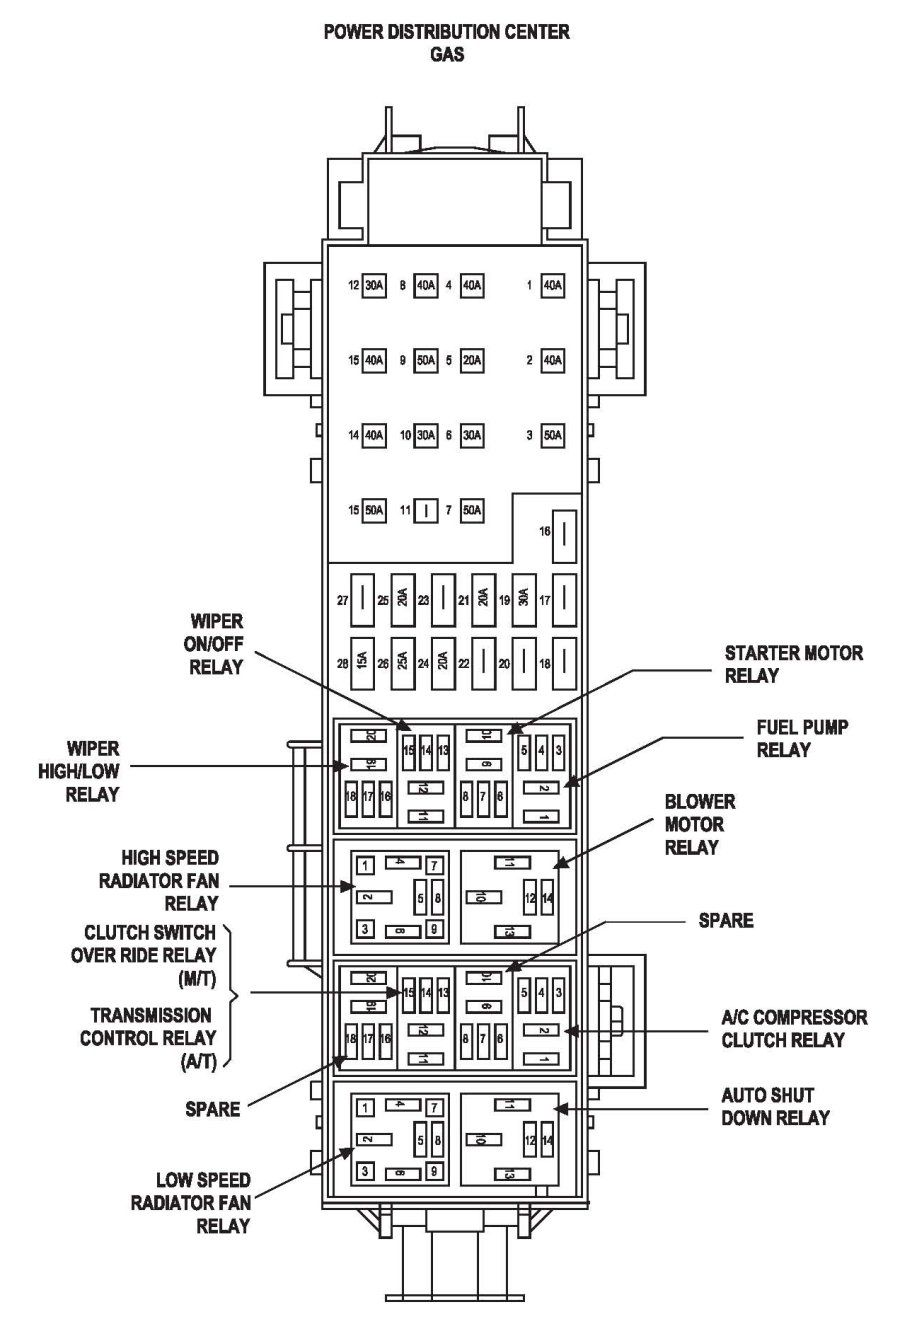 Jeep Liberty Fuse Box 2006 Archive Of Automotive Wiring Diagram Ford Freestar Panel Image Details Rh Pinterest Com Interior